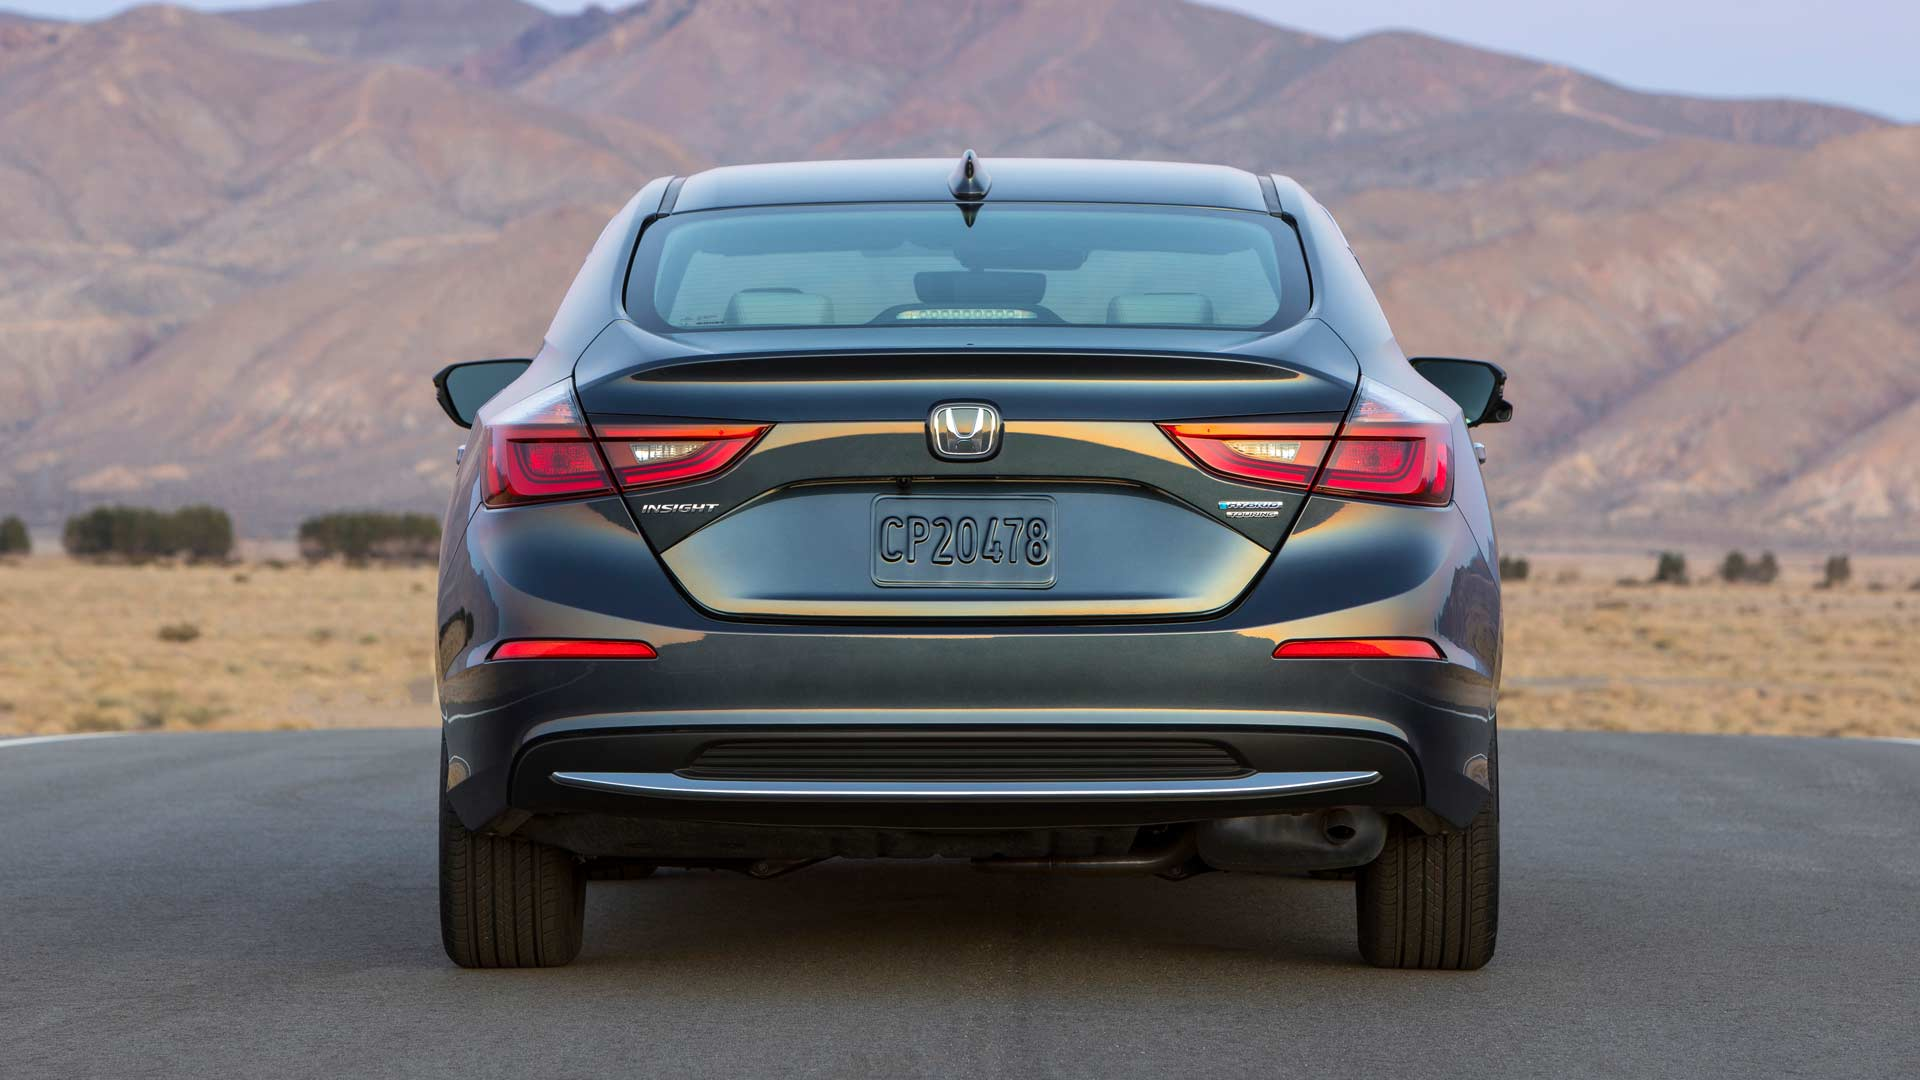 Honda Greensburg Indiana >> 2019 Honda Insight gets style, safety and more equipment - Autodevot